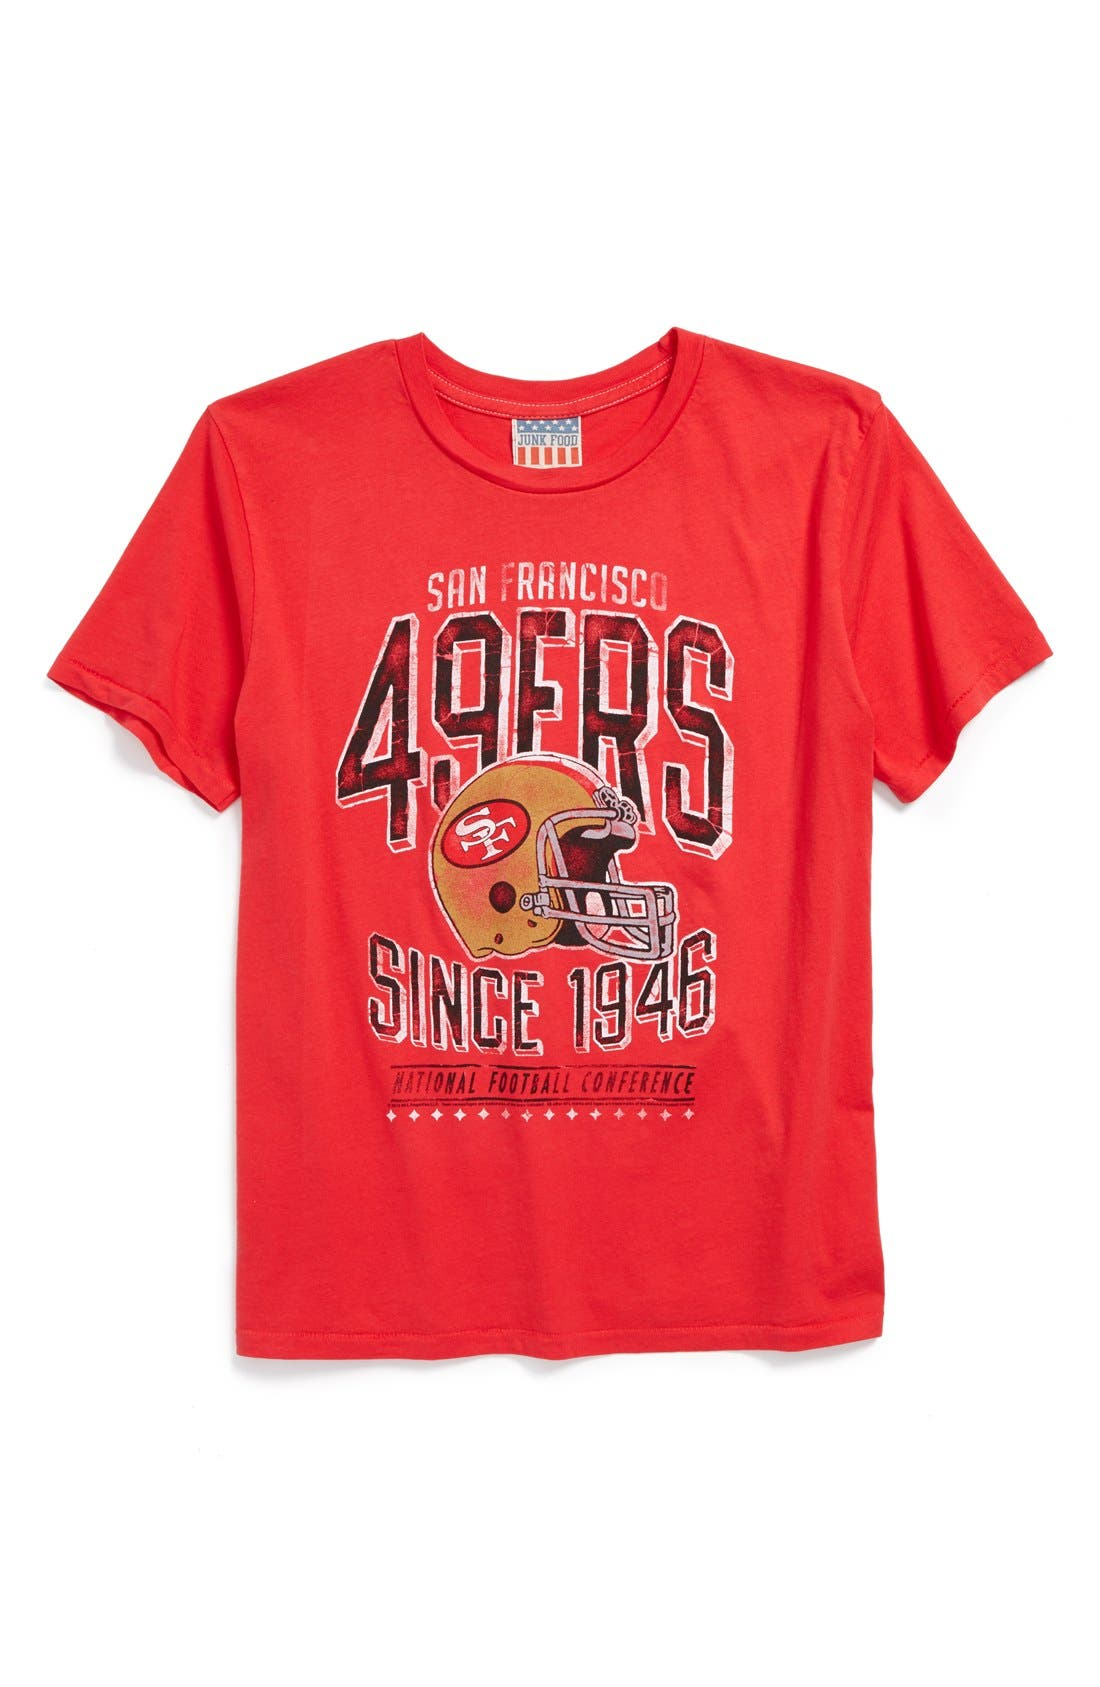 Alternate Image 1 Selected - Junk Food 'San Francisco 49ers - NFL' Graphic T-Shirt (Little Boys & Big Boys)